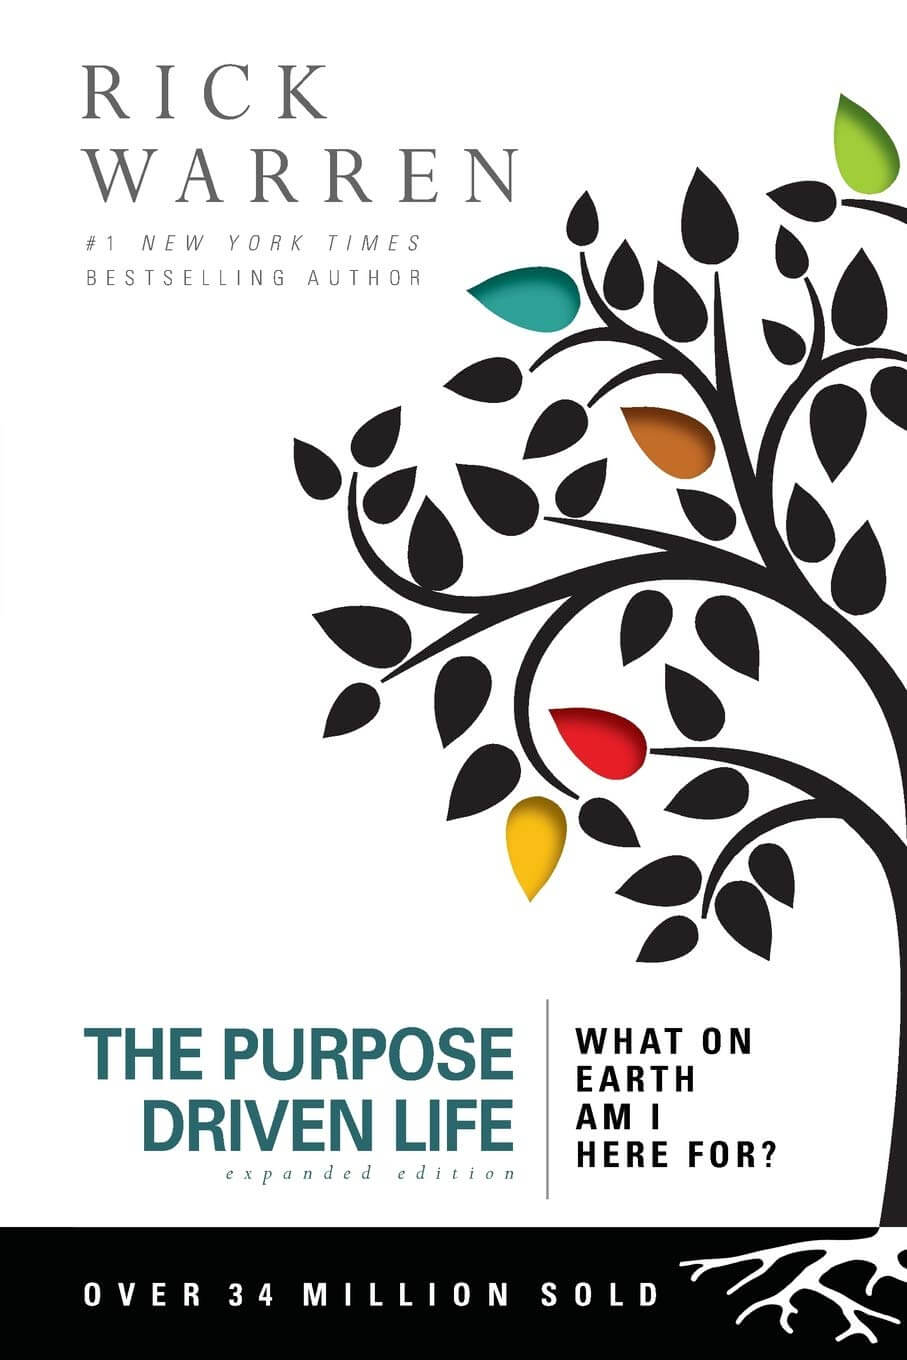 THE-PURPOSE-DRIVEN-LIFE-WHAT-ON-EARTH-AM-I-HERE-FOR-BY-RICK-WARREN